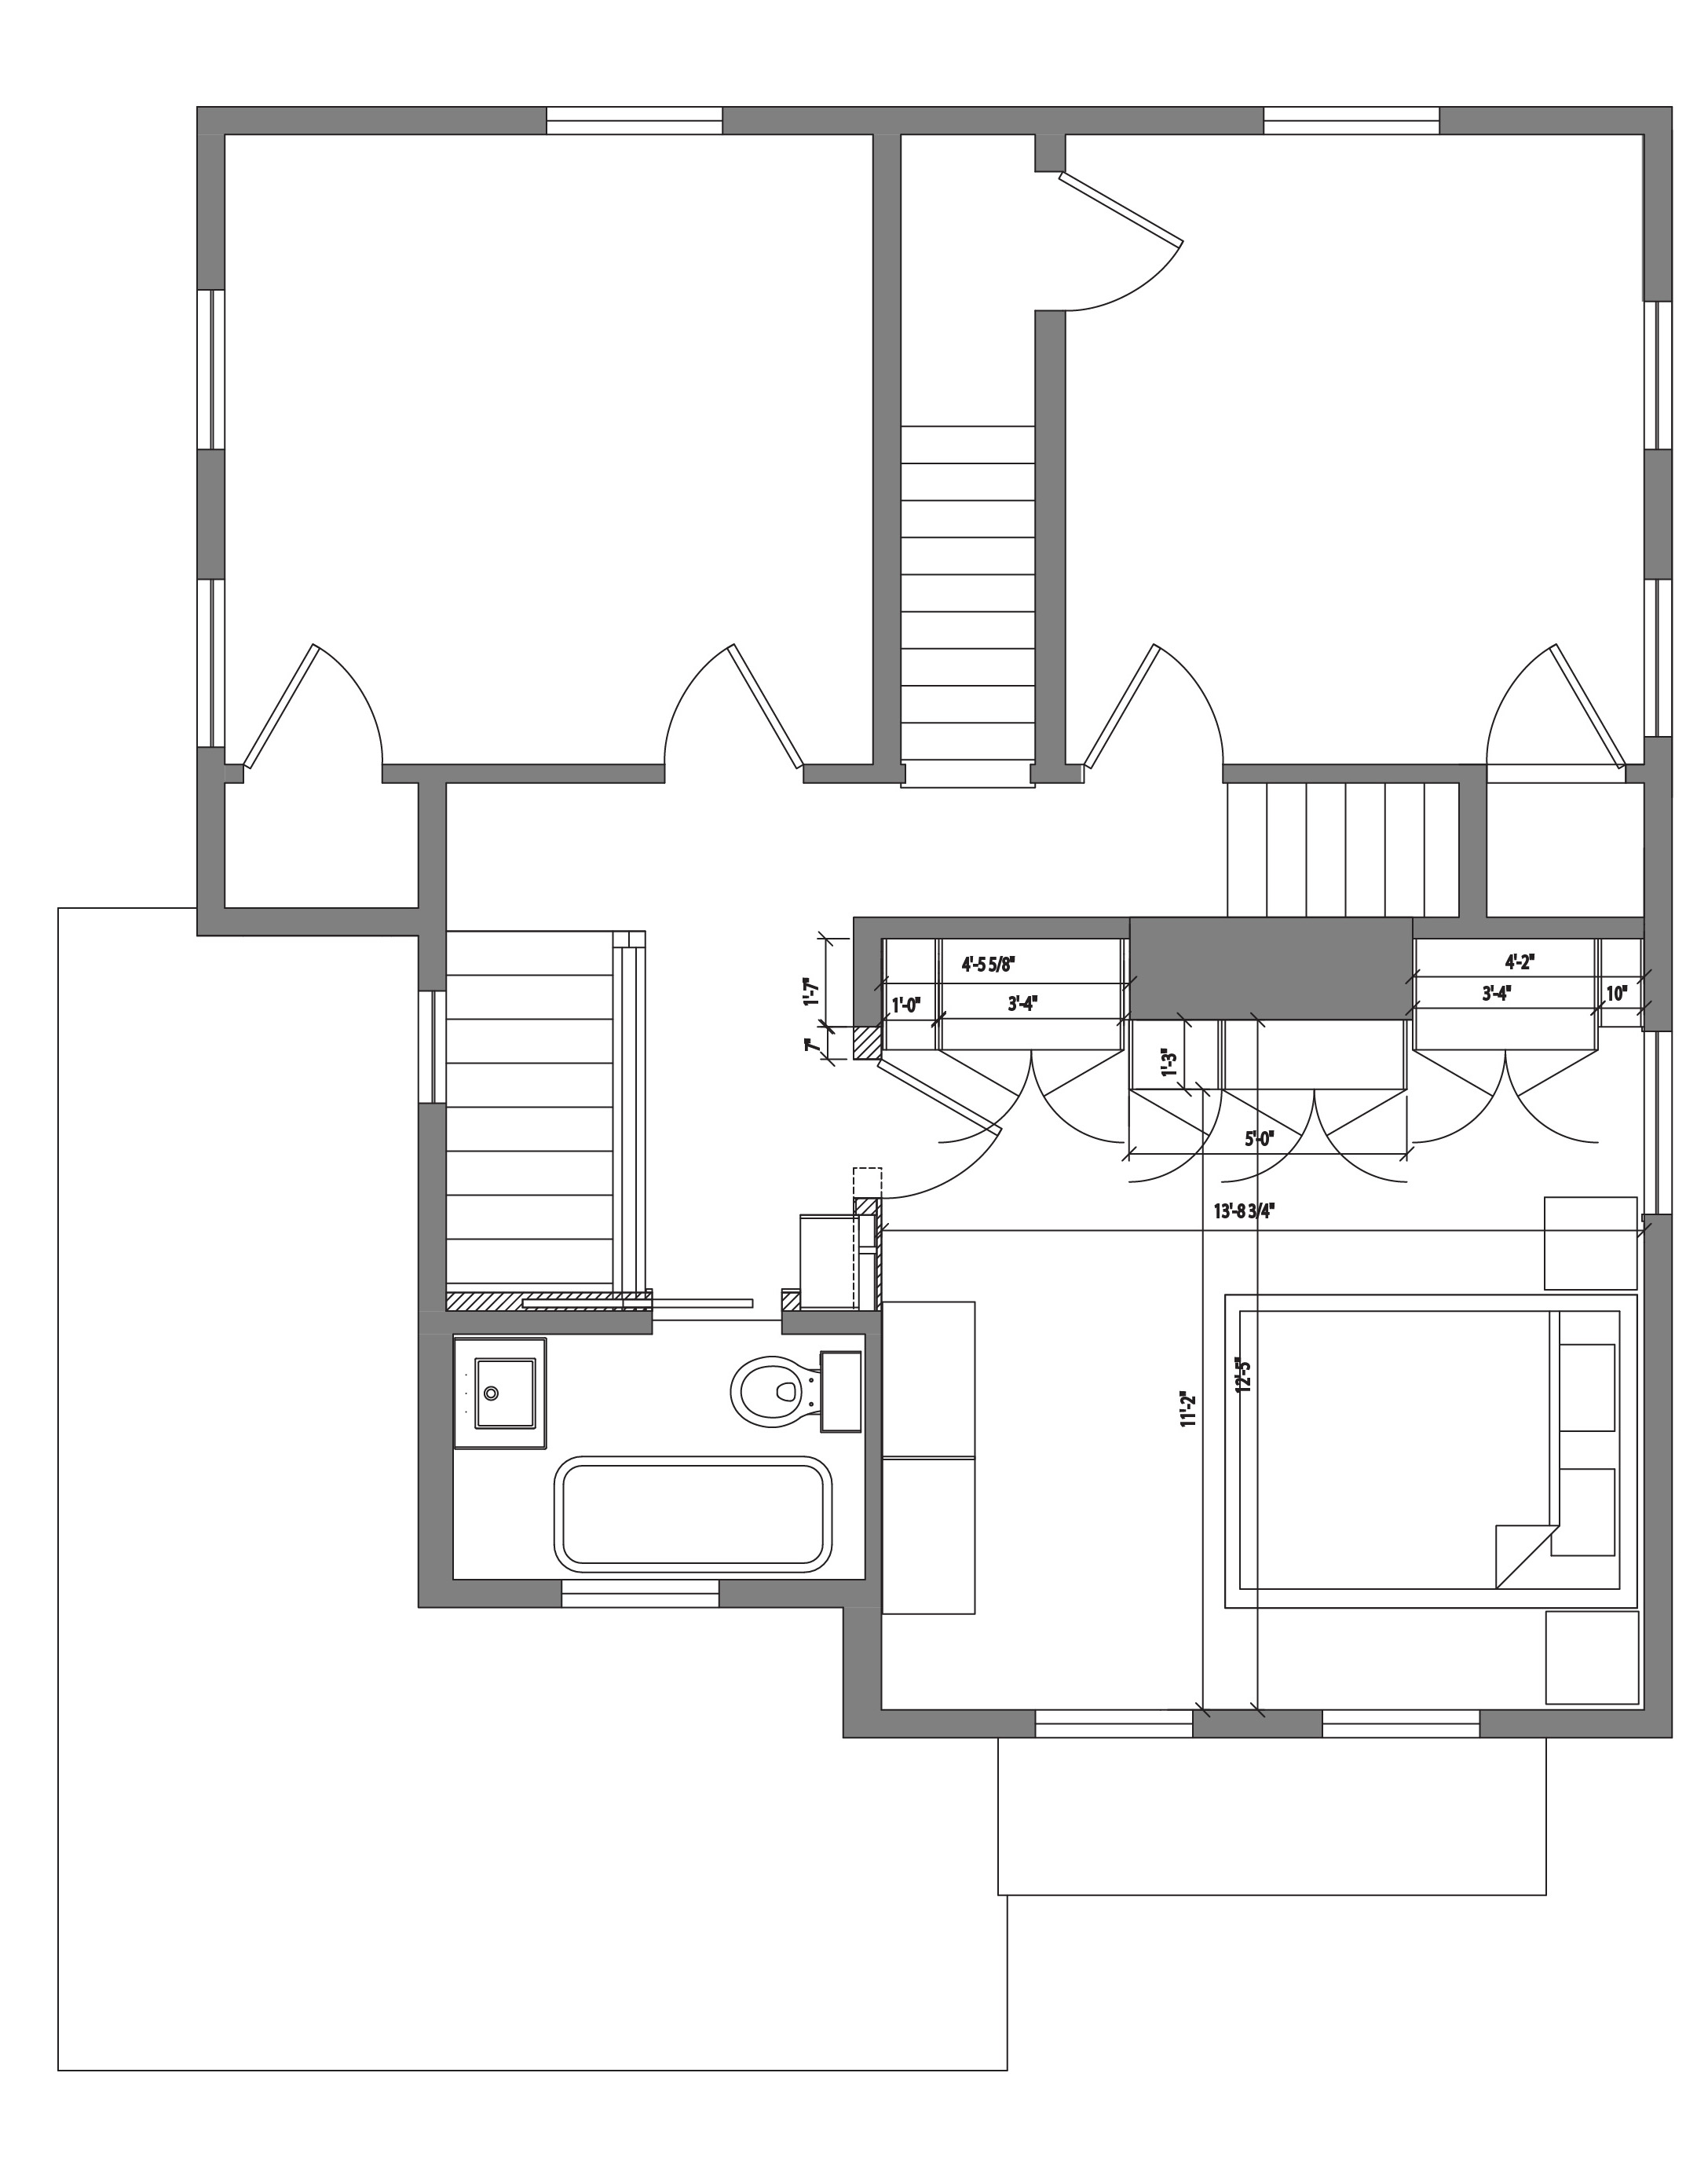 Bedroom Layout Rules